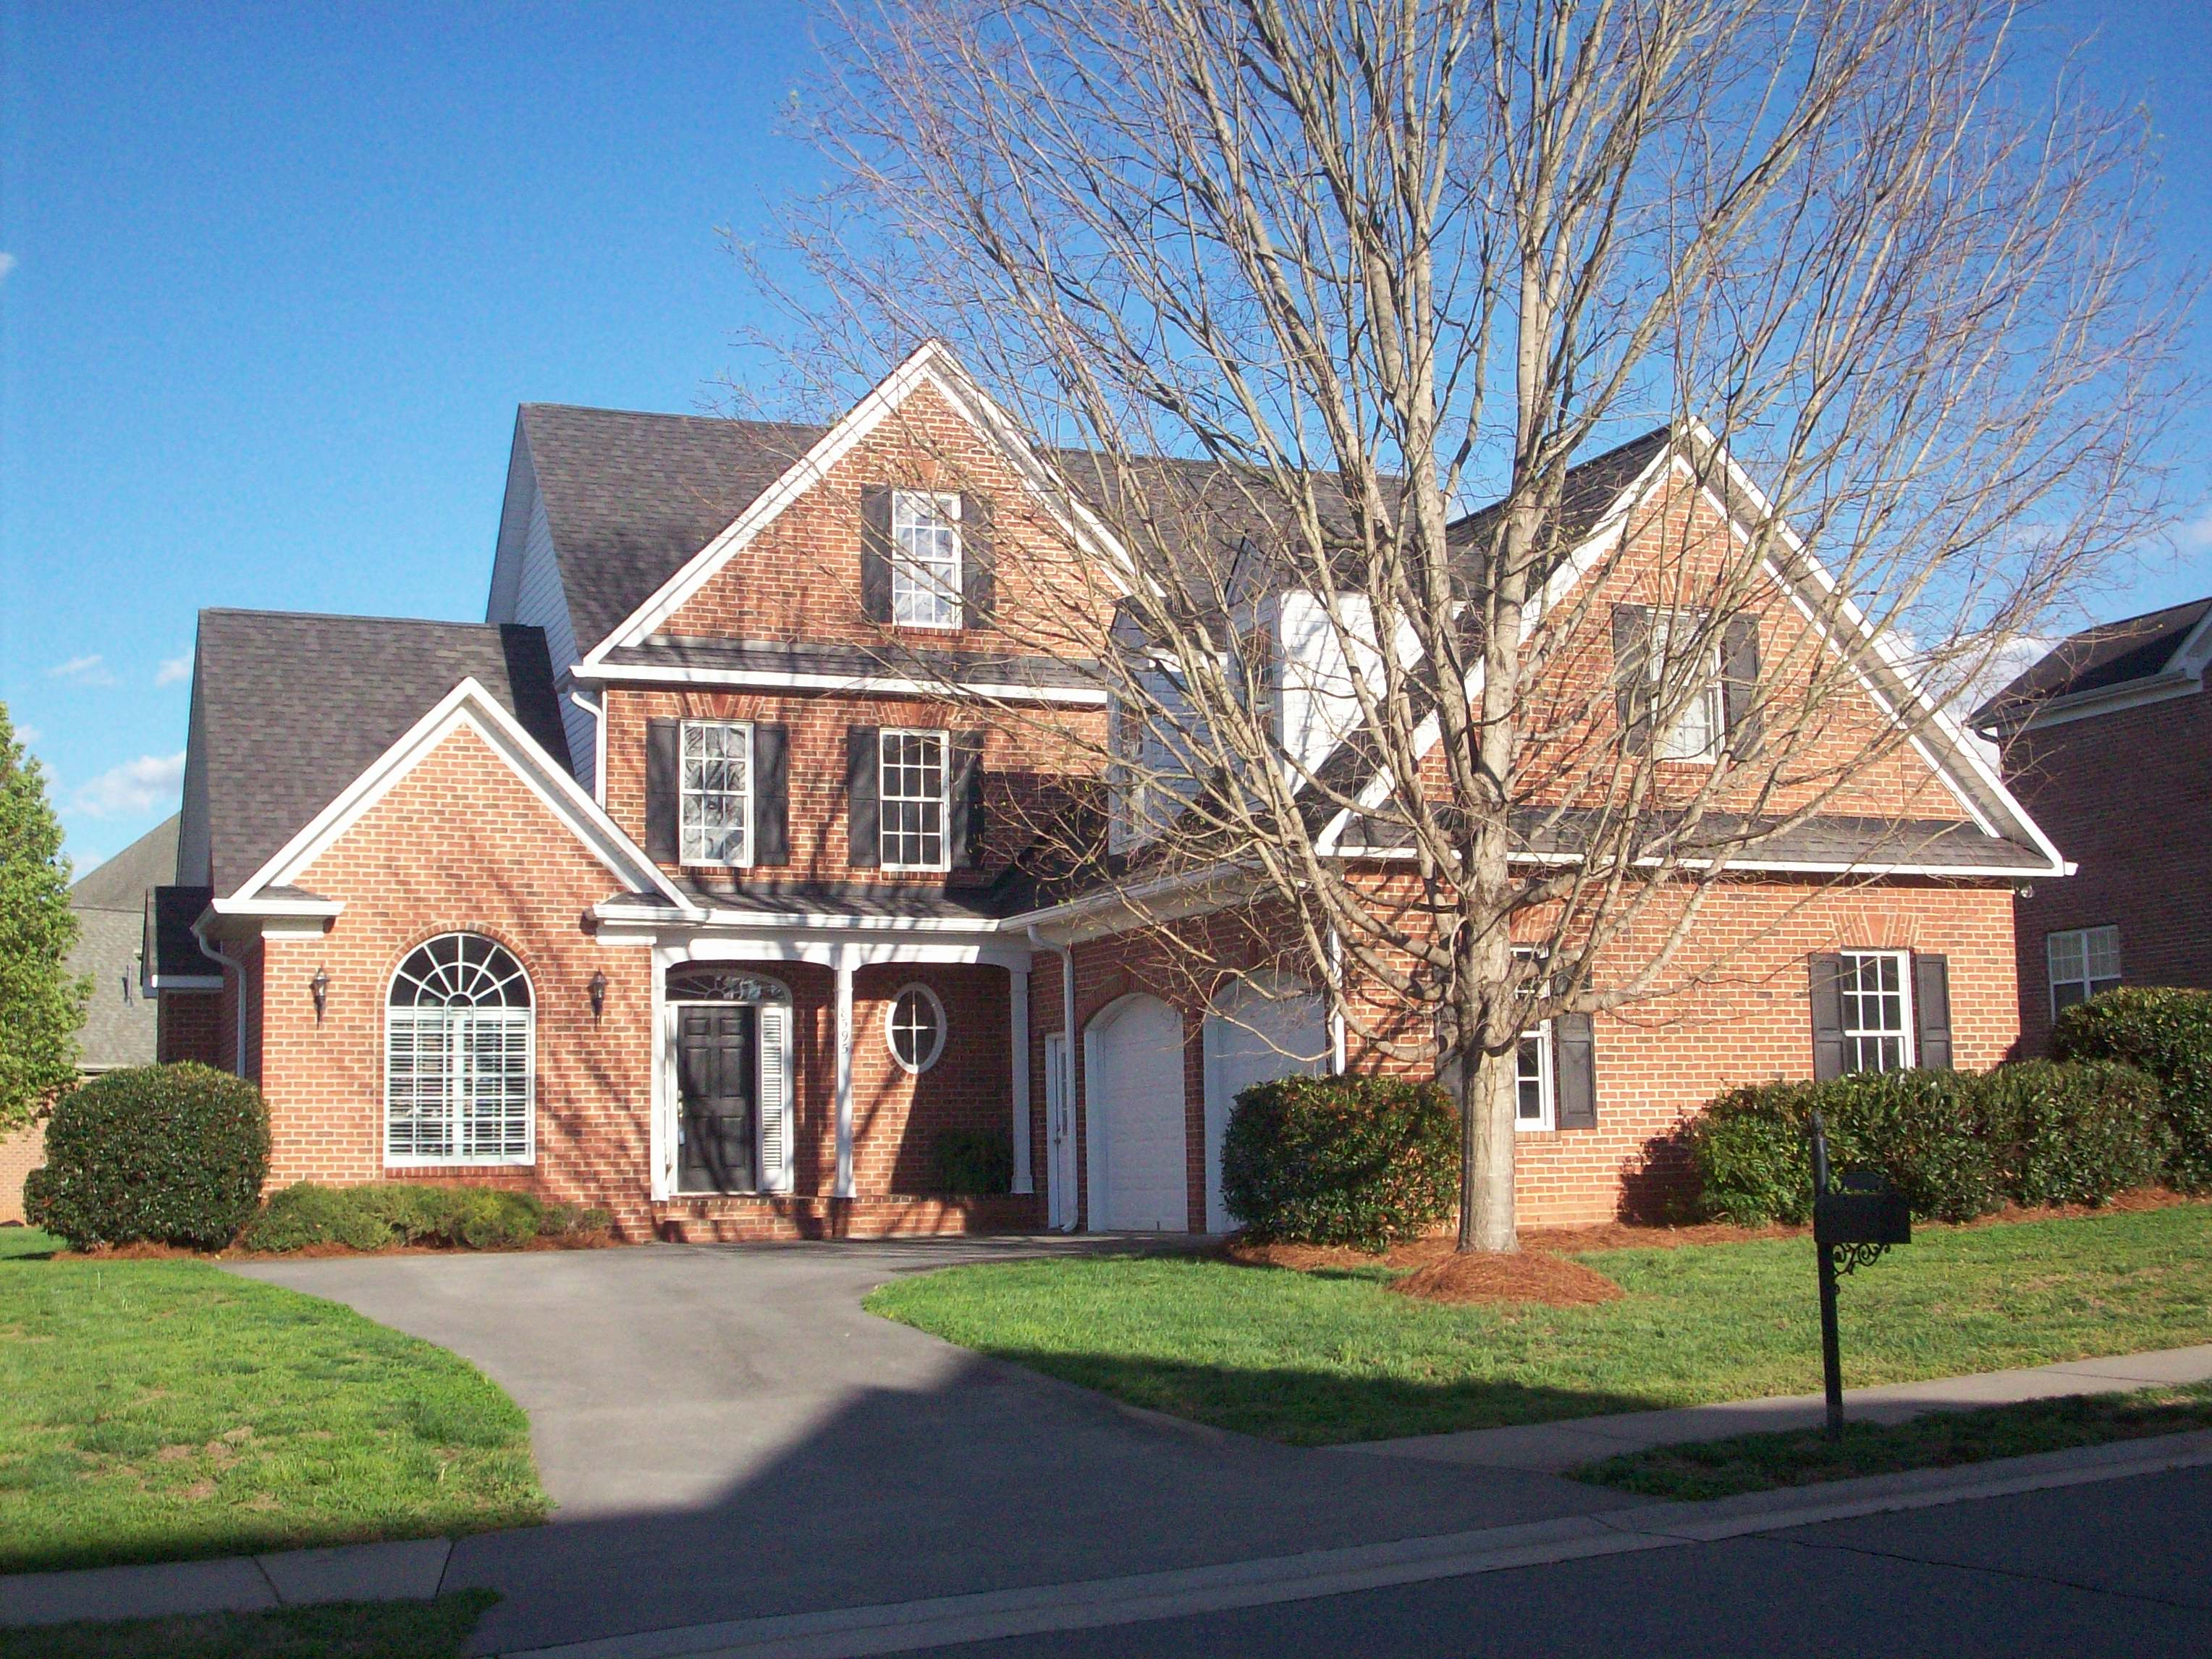 Homes for Sale in Waterford Village, Clemmons, NC